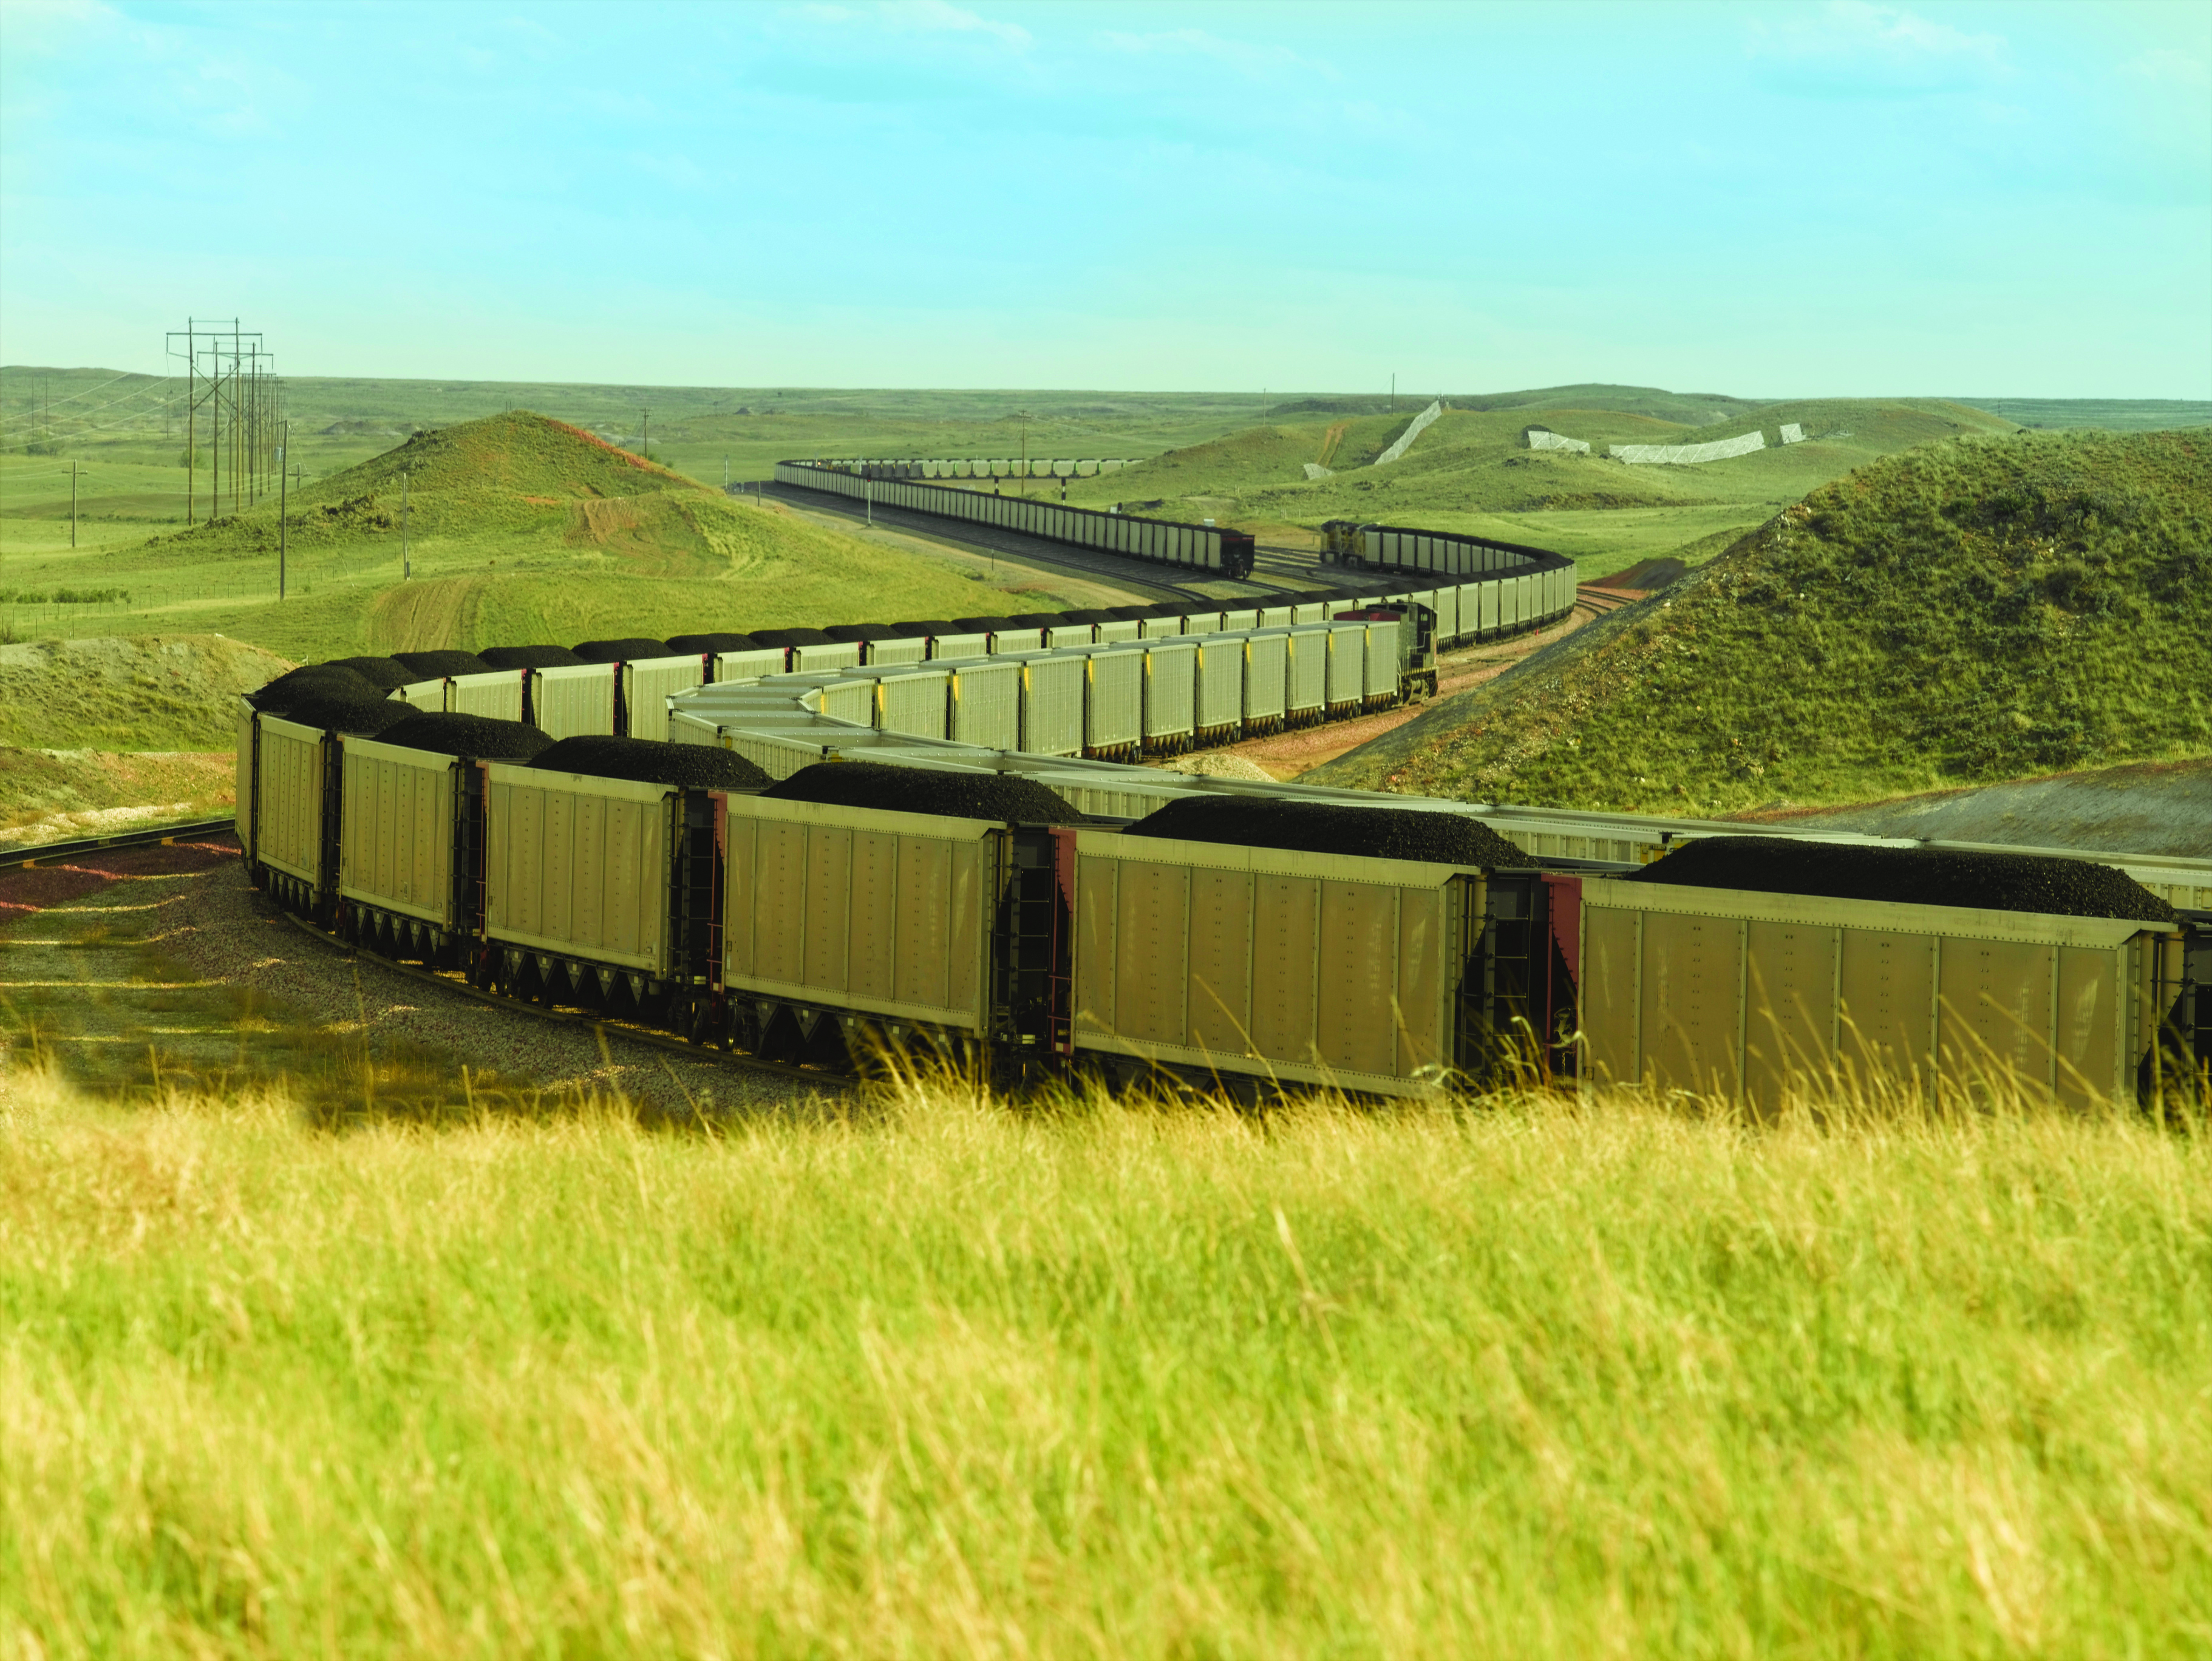 Goods train carrying coal